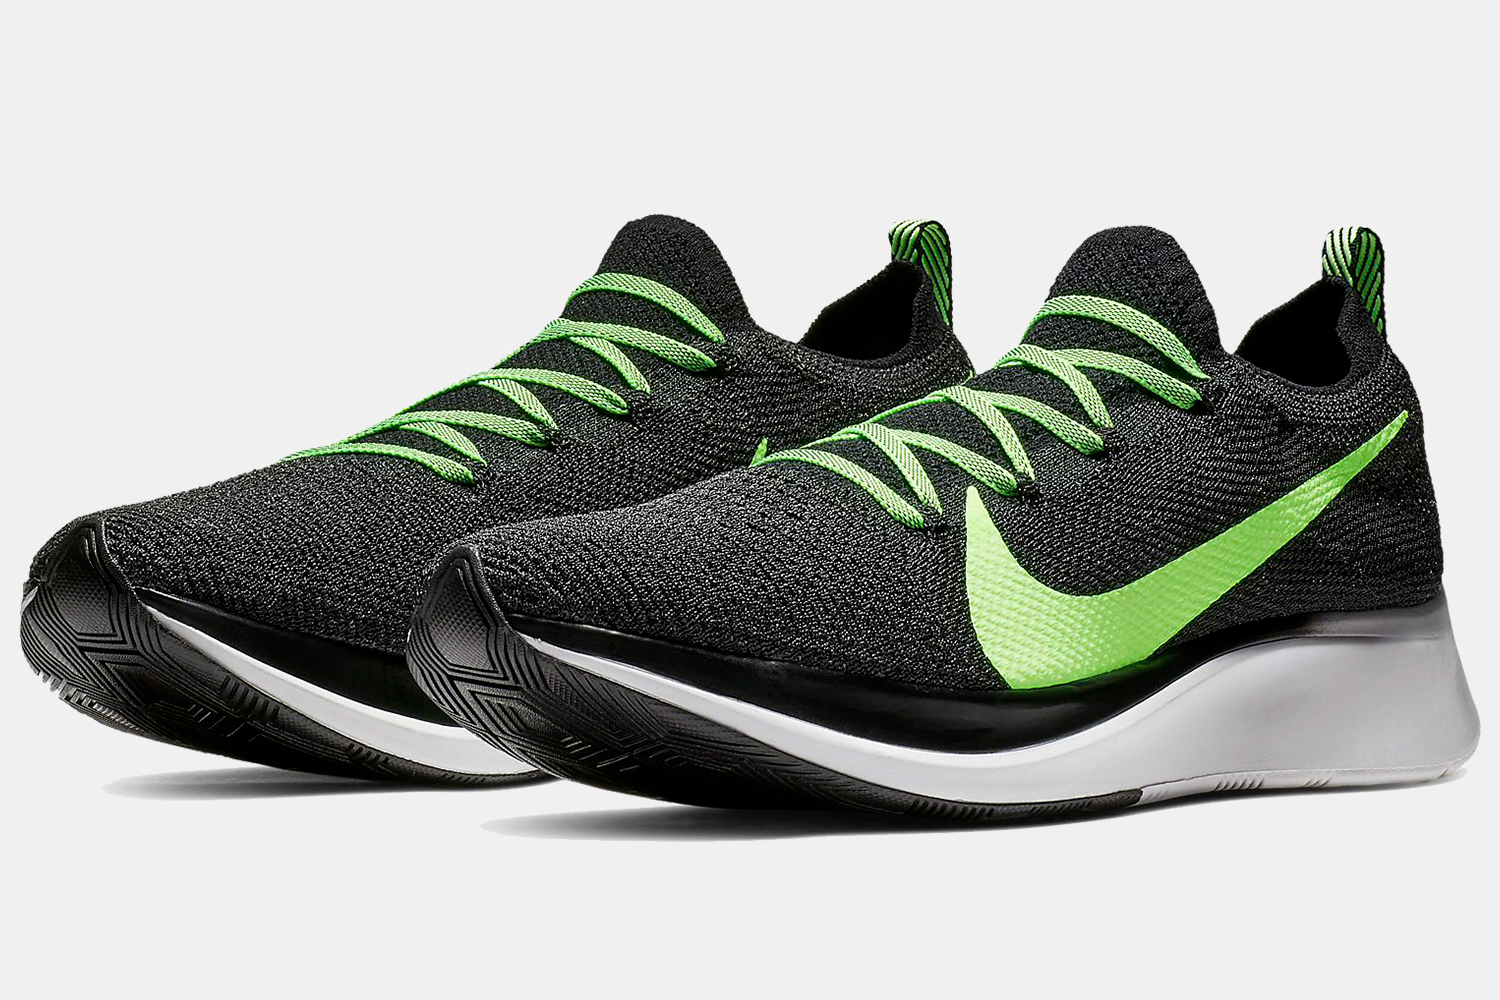 300150028a79 Nike discounted their Zoom Fly Flyknit running shoe by  56.